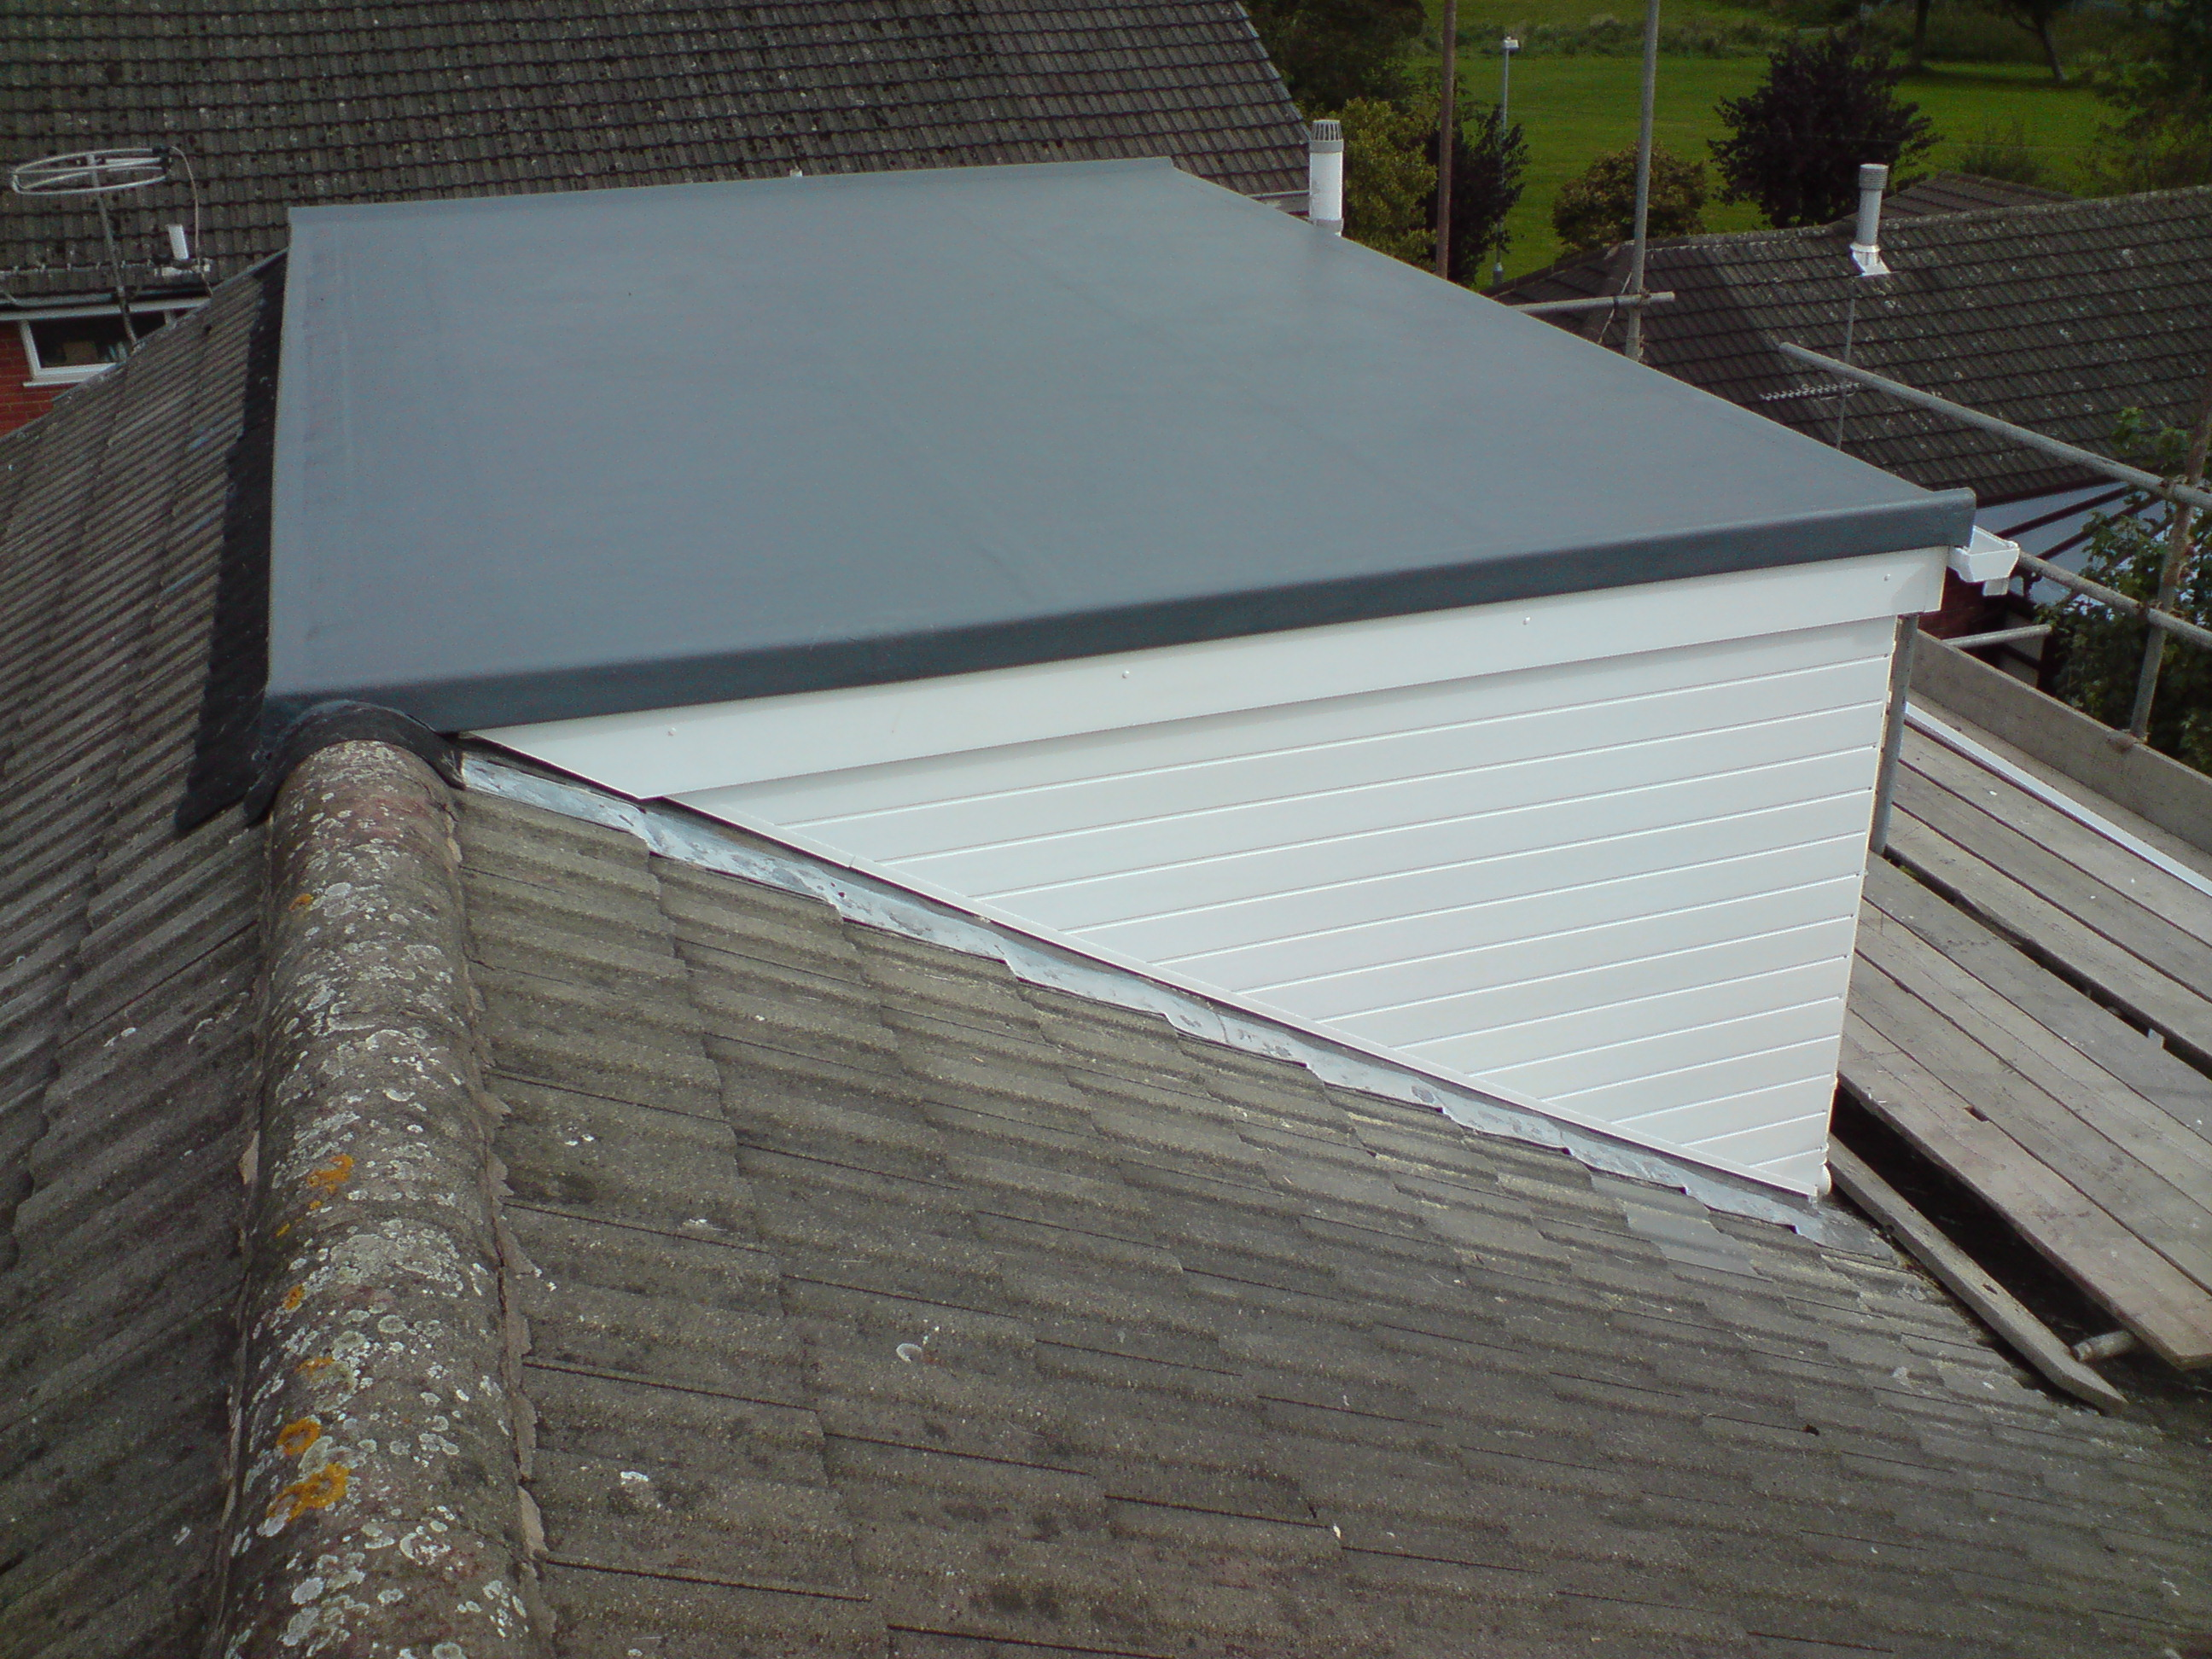 For A FREE QUOTATION Or More Info About Our Services U2013 Get In Touch By  Email Or Call 0800 028 7124 Or 0141 952 6620